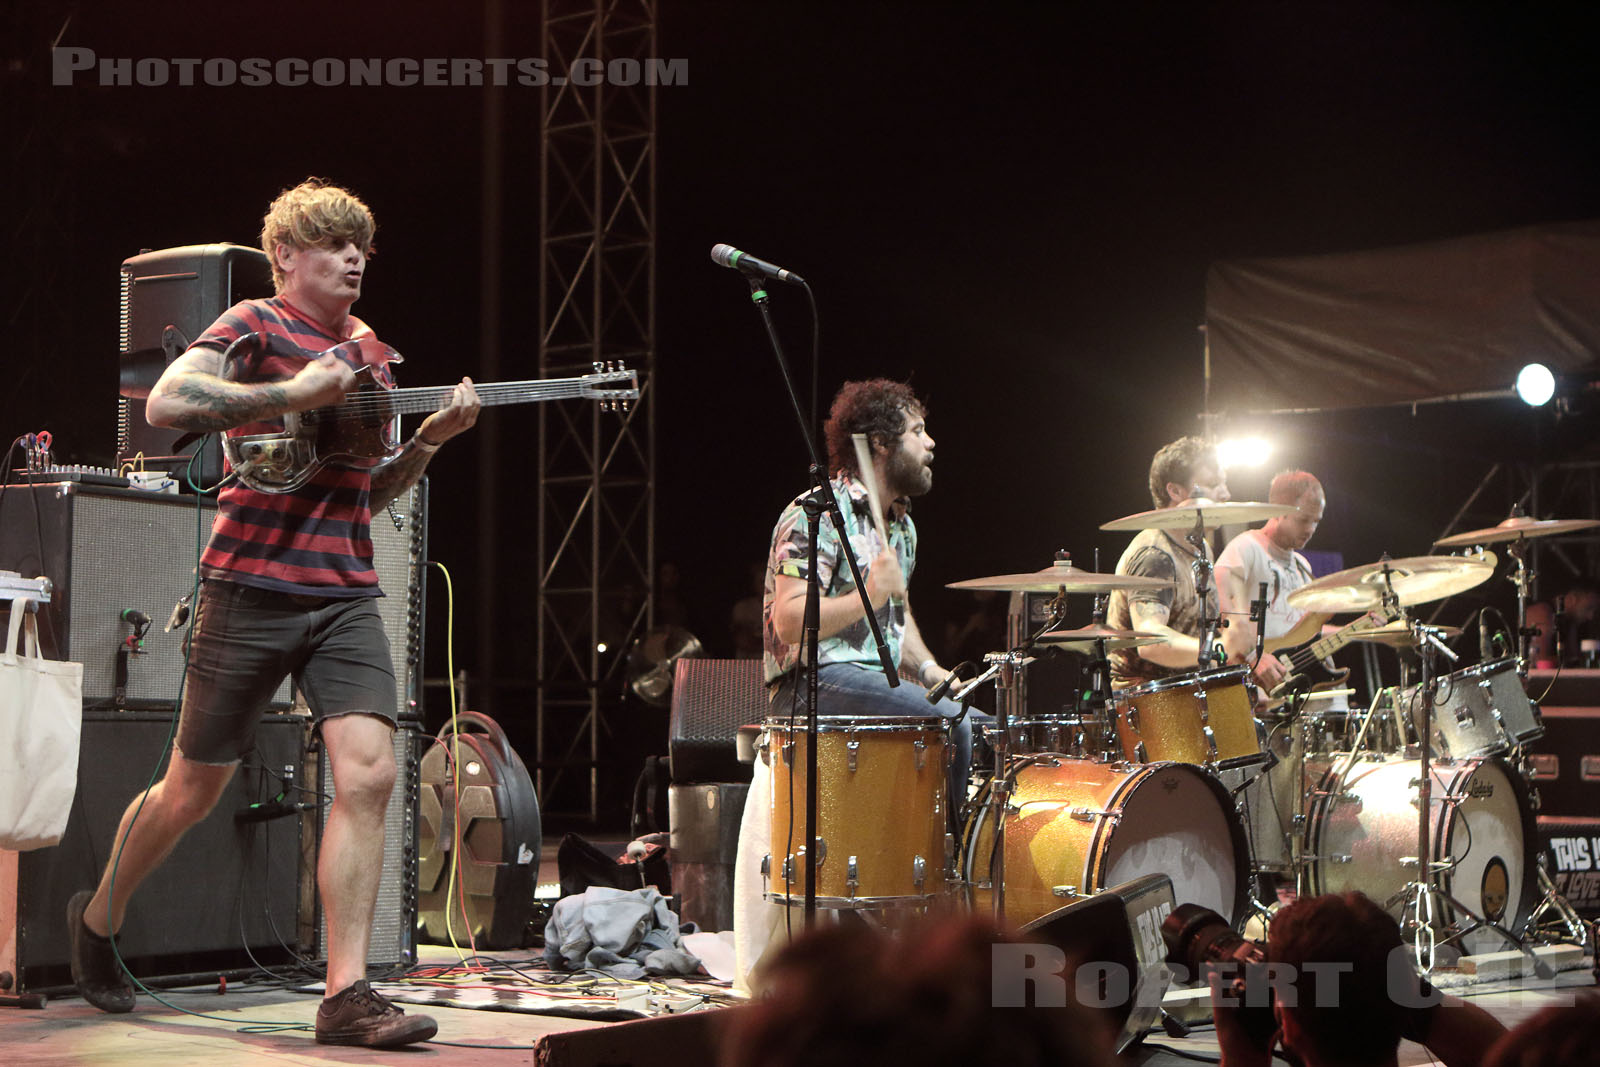 THEE OH SEES - 2017-06-10 - NIMES - Paloma - Flamingo